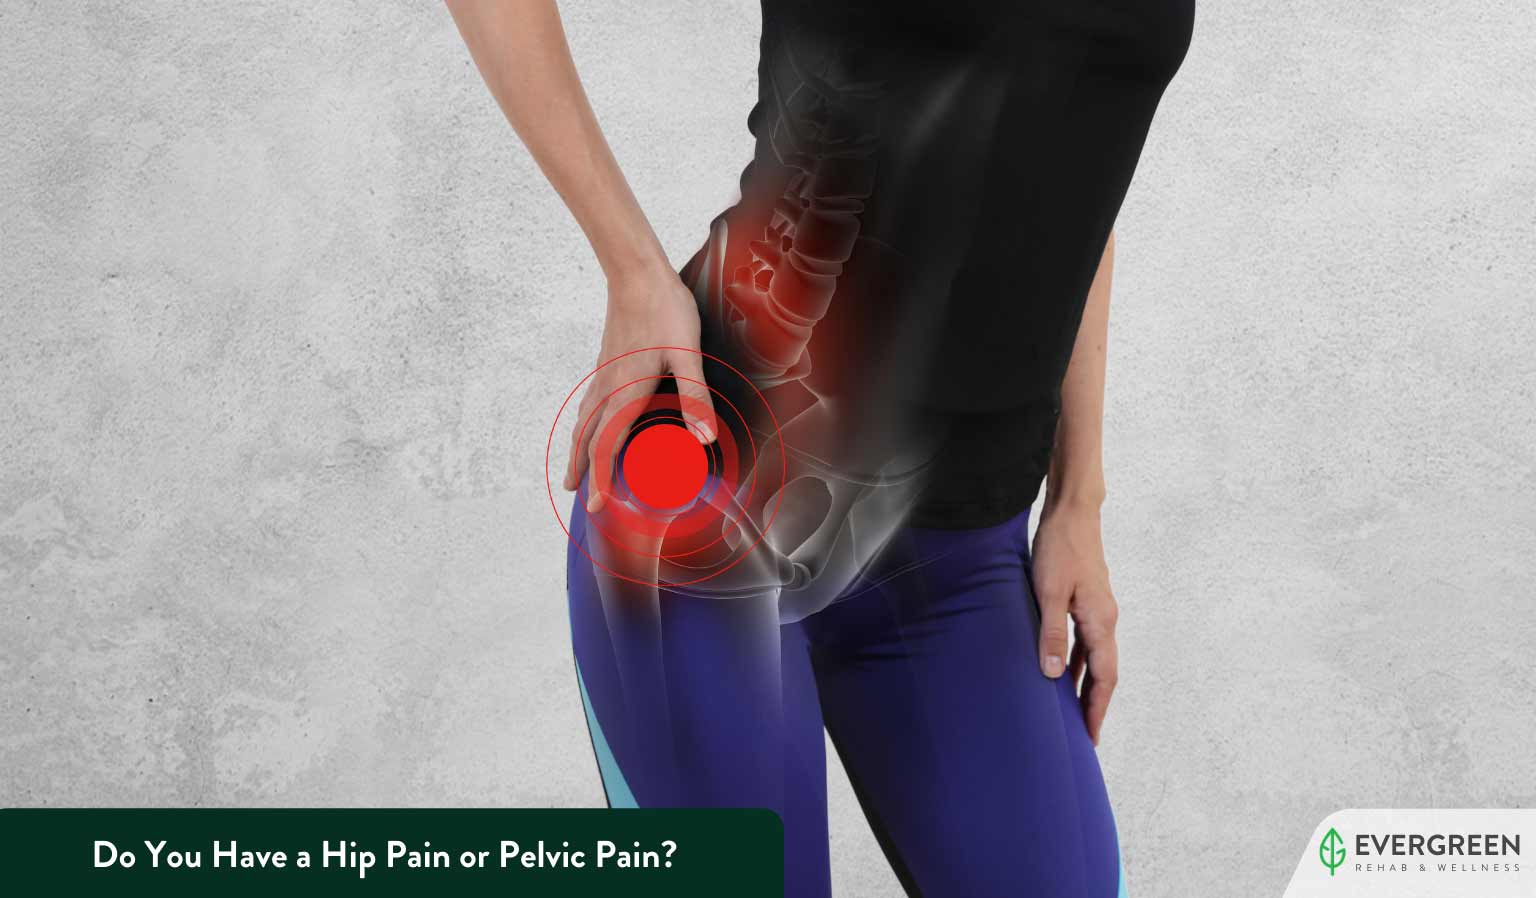 Do You Have a Hip Pain or Pelvic Pain?